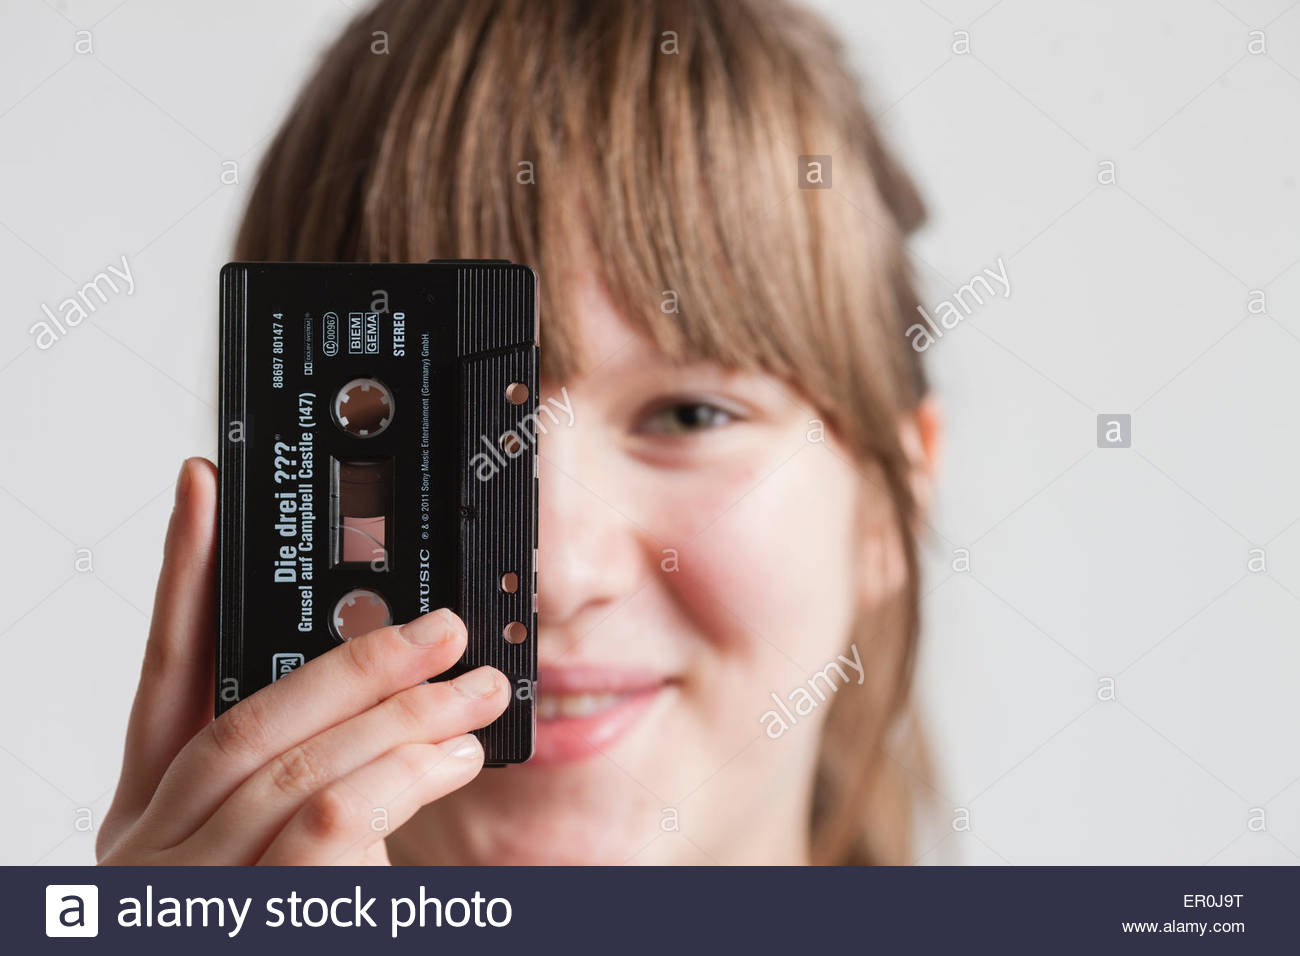 girl with audiocassette - Stock Image